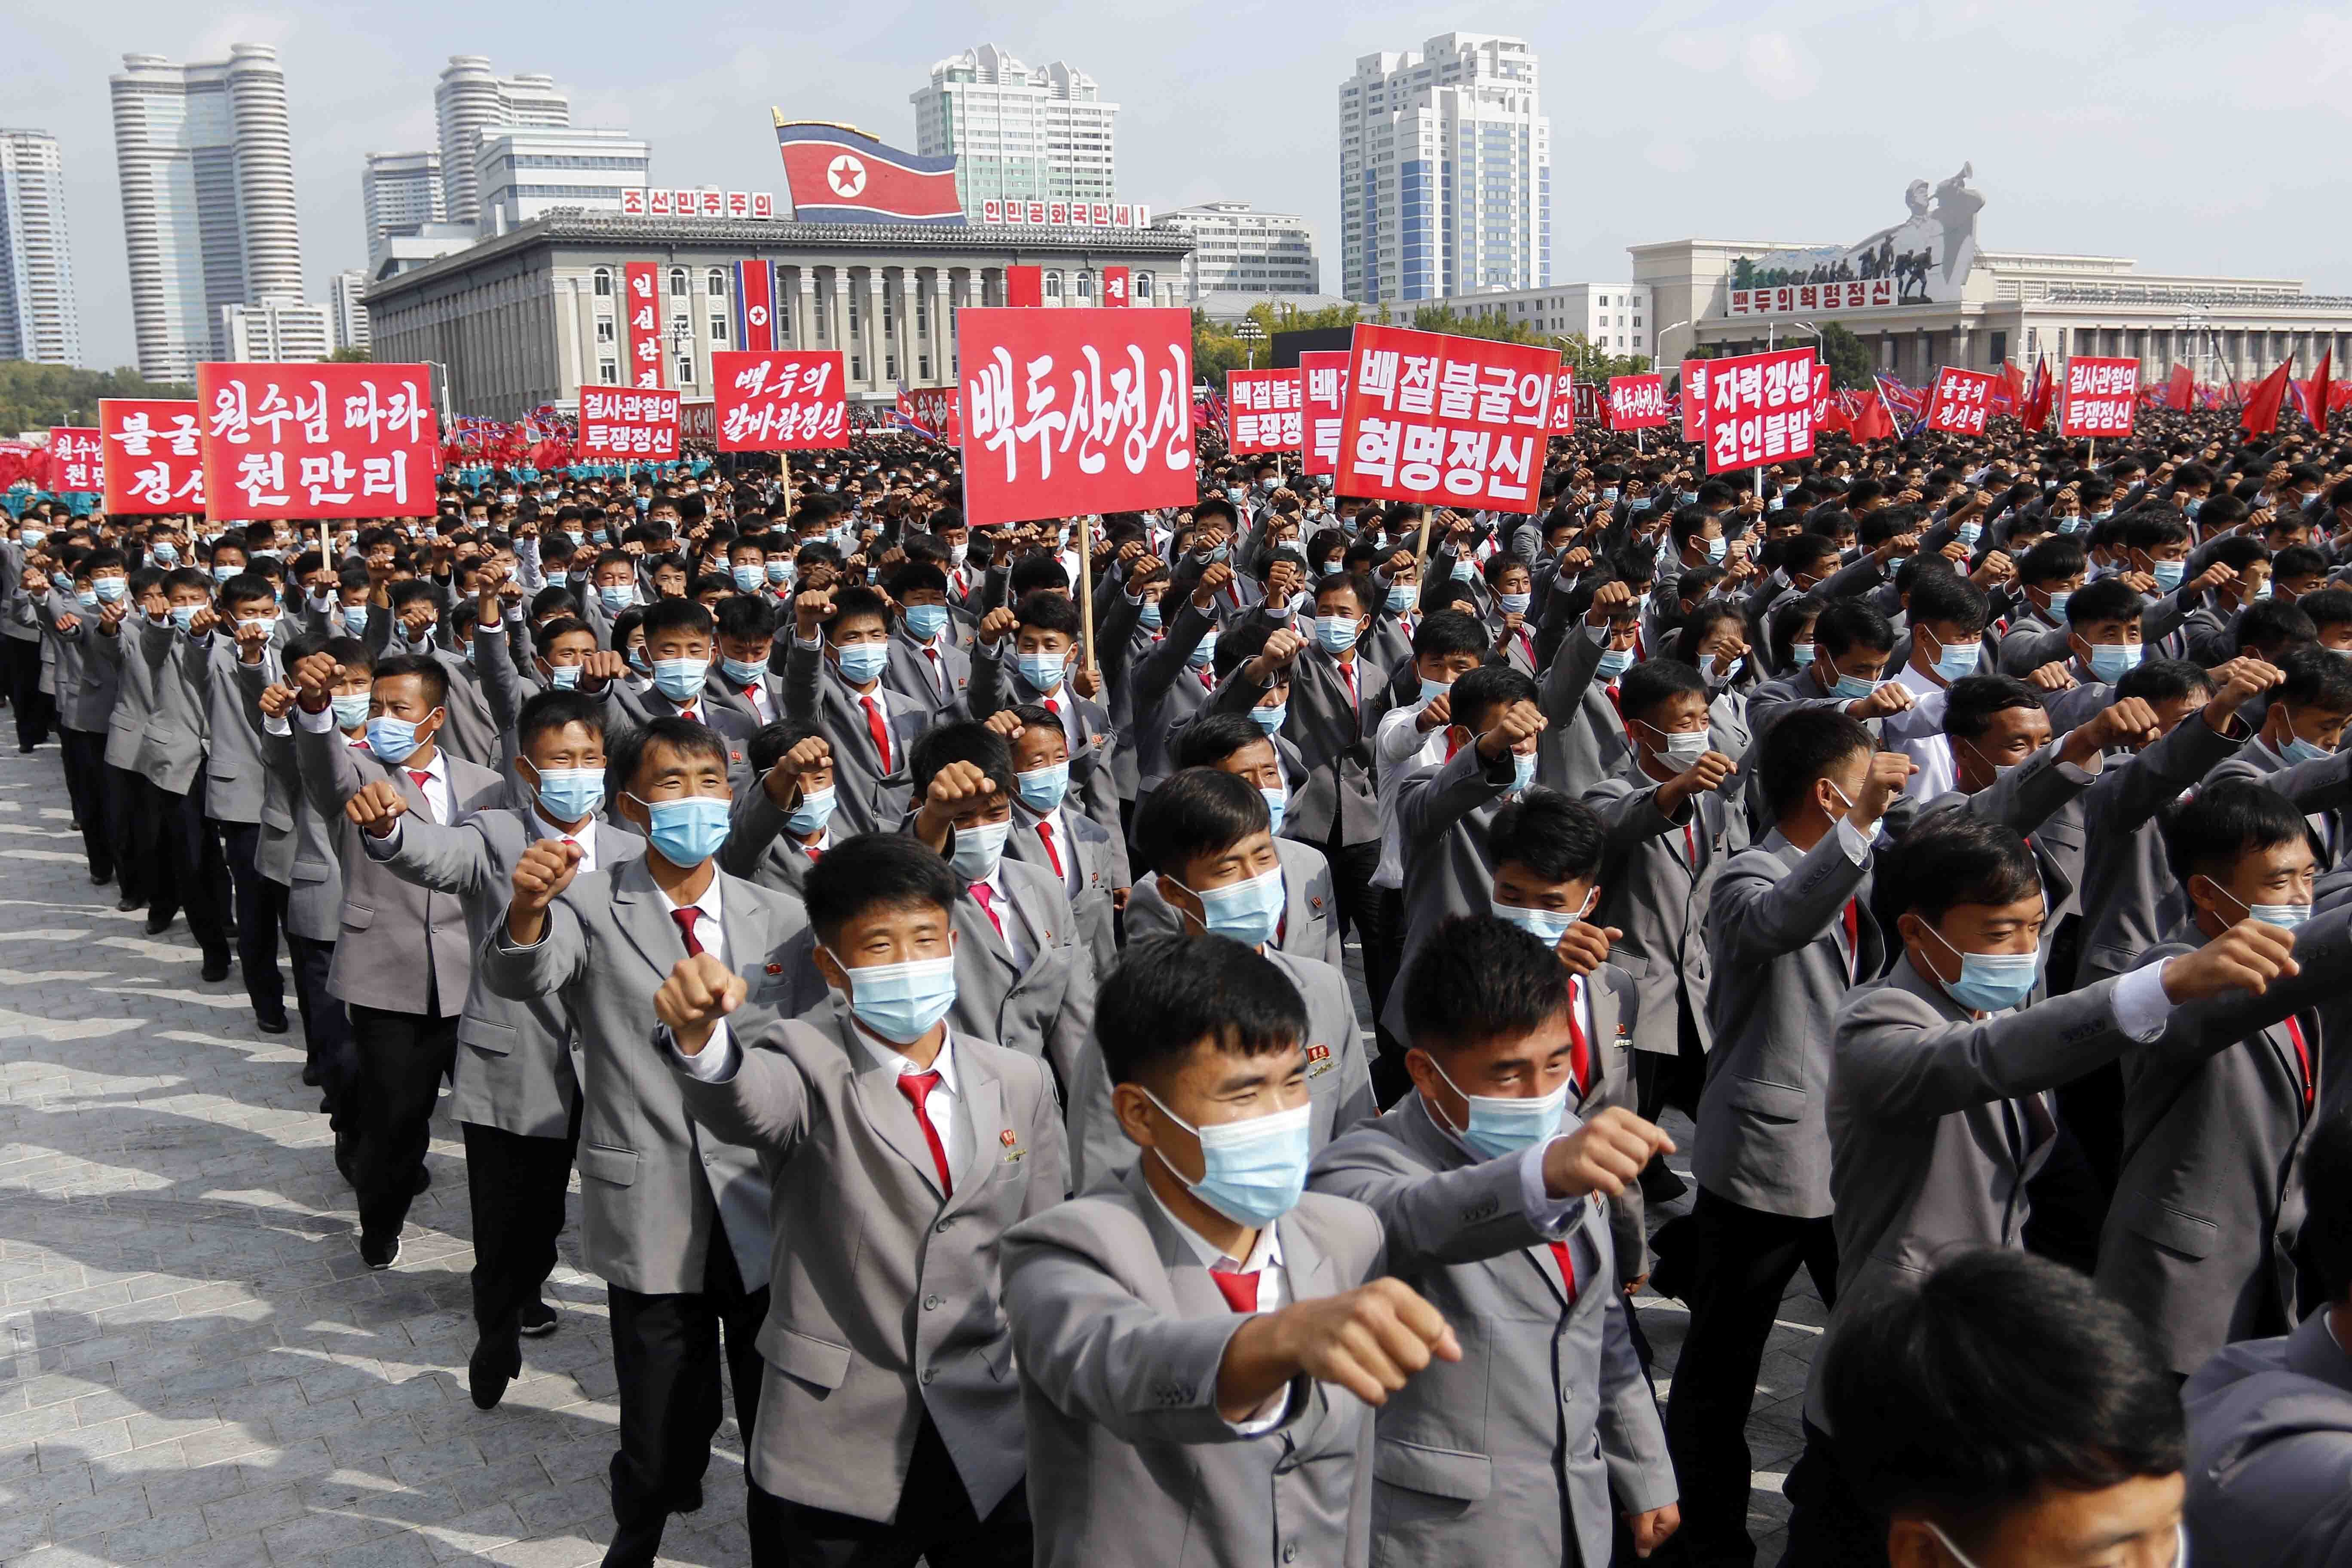 Thousands rally to welcome the 8th Congress of the Workers' Party of Korea in the Party at Kim Il Sung Square in Pyongyang, North Korea, Monday, Oct. 12, 2020. (AP Photo/Jon Chol Jin)